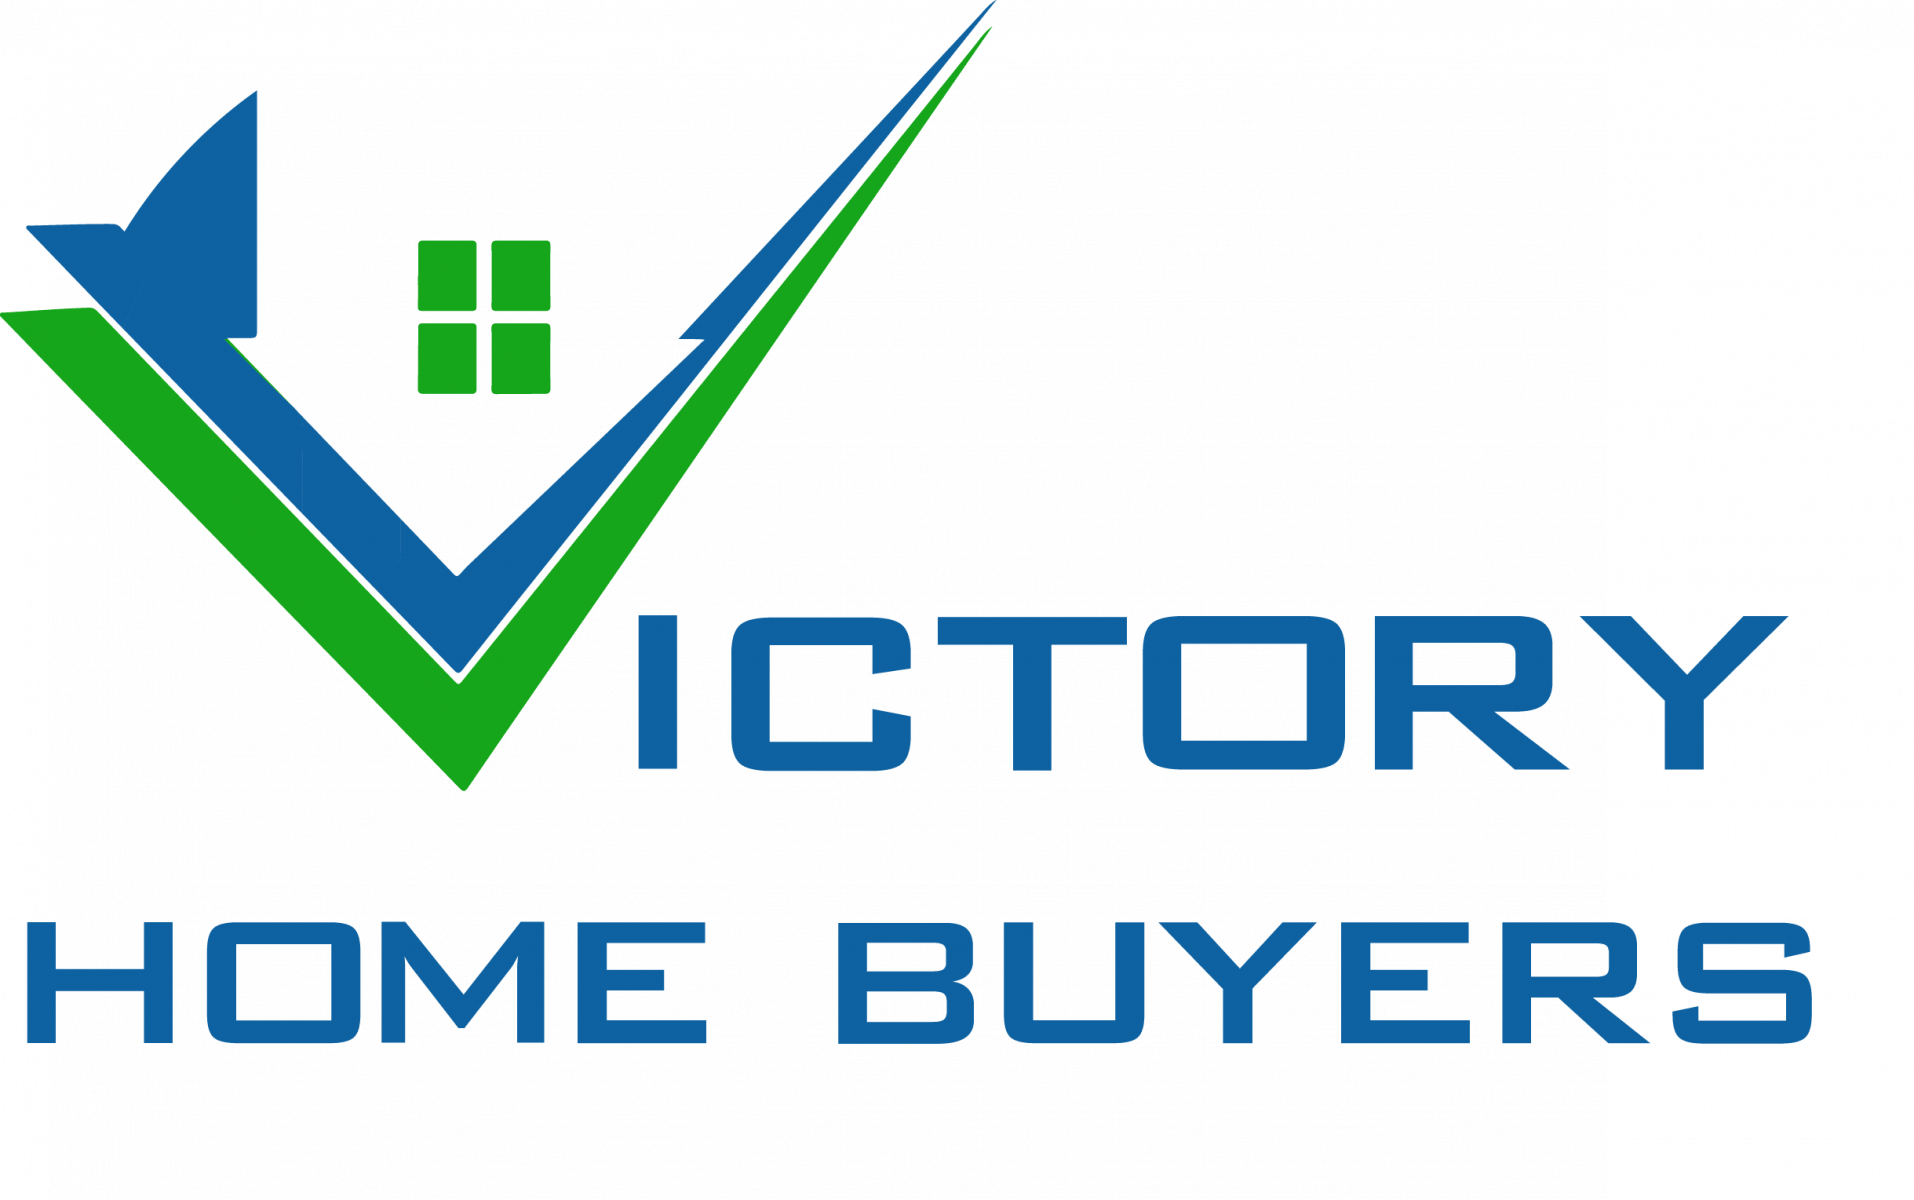 Victory Home Buyers logo